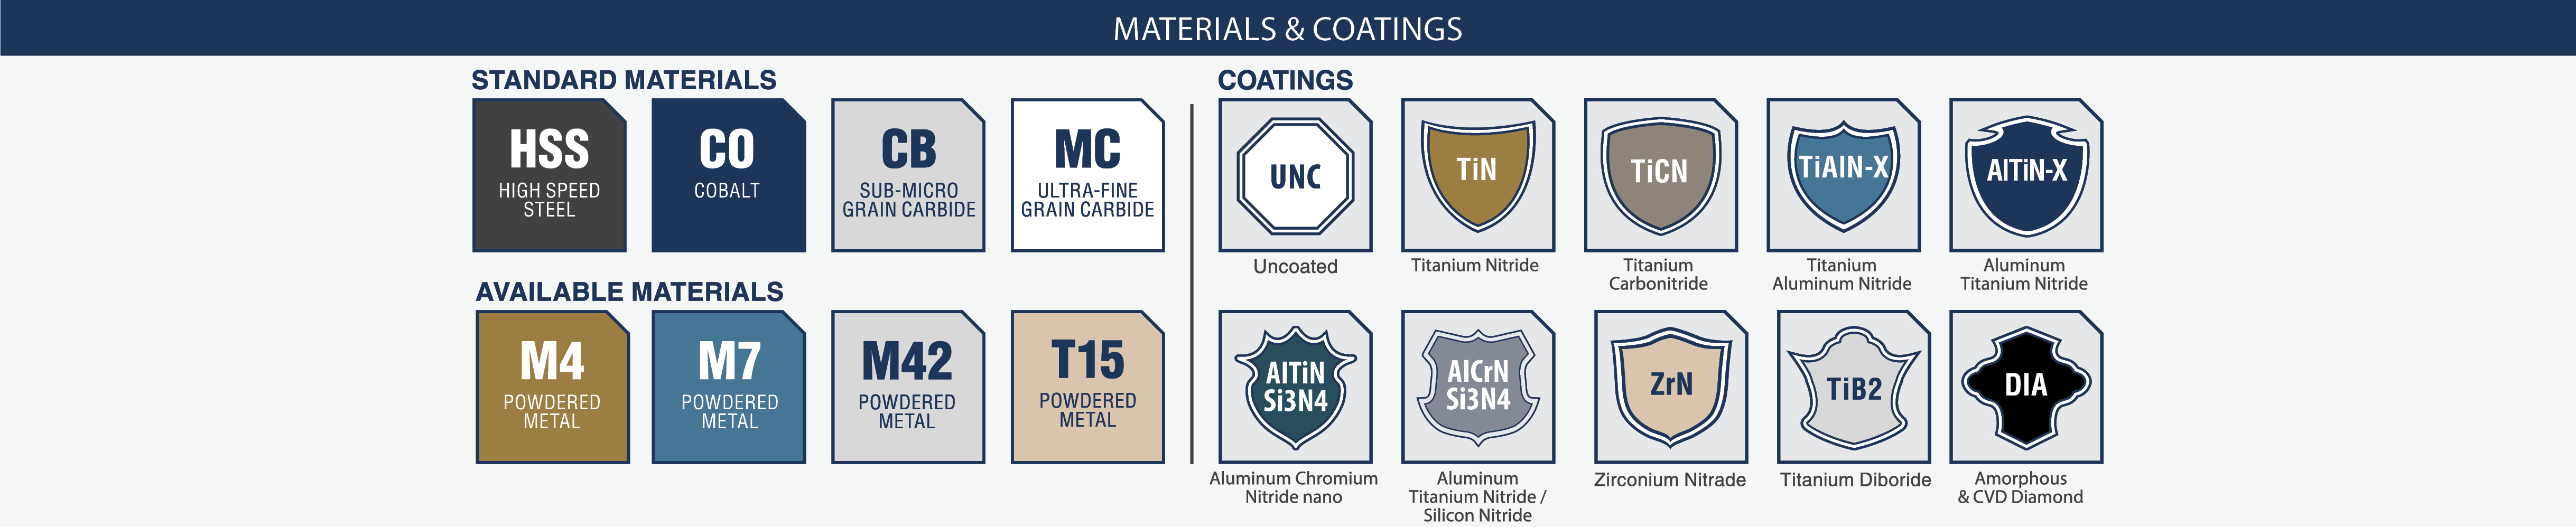 Icon Index Materials and Coatings